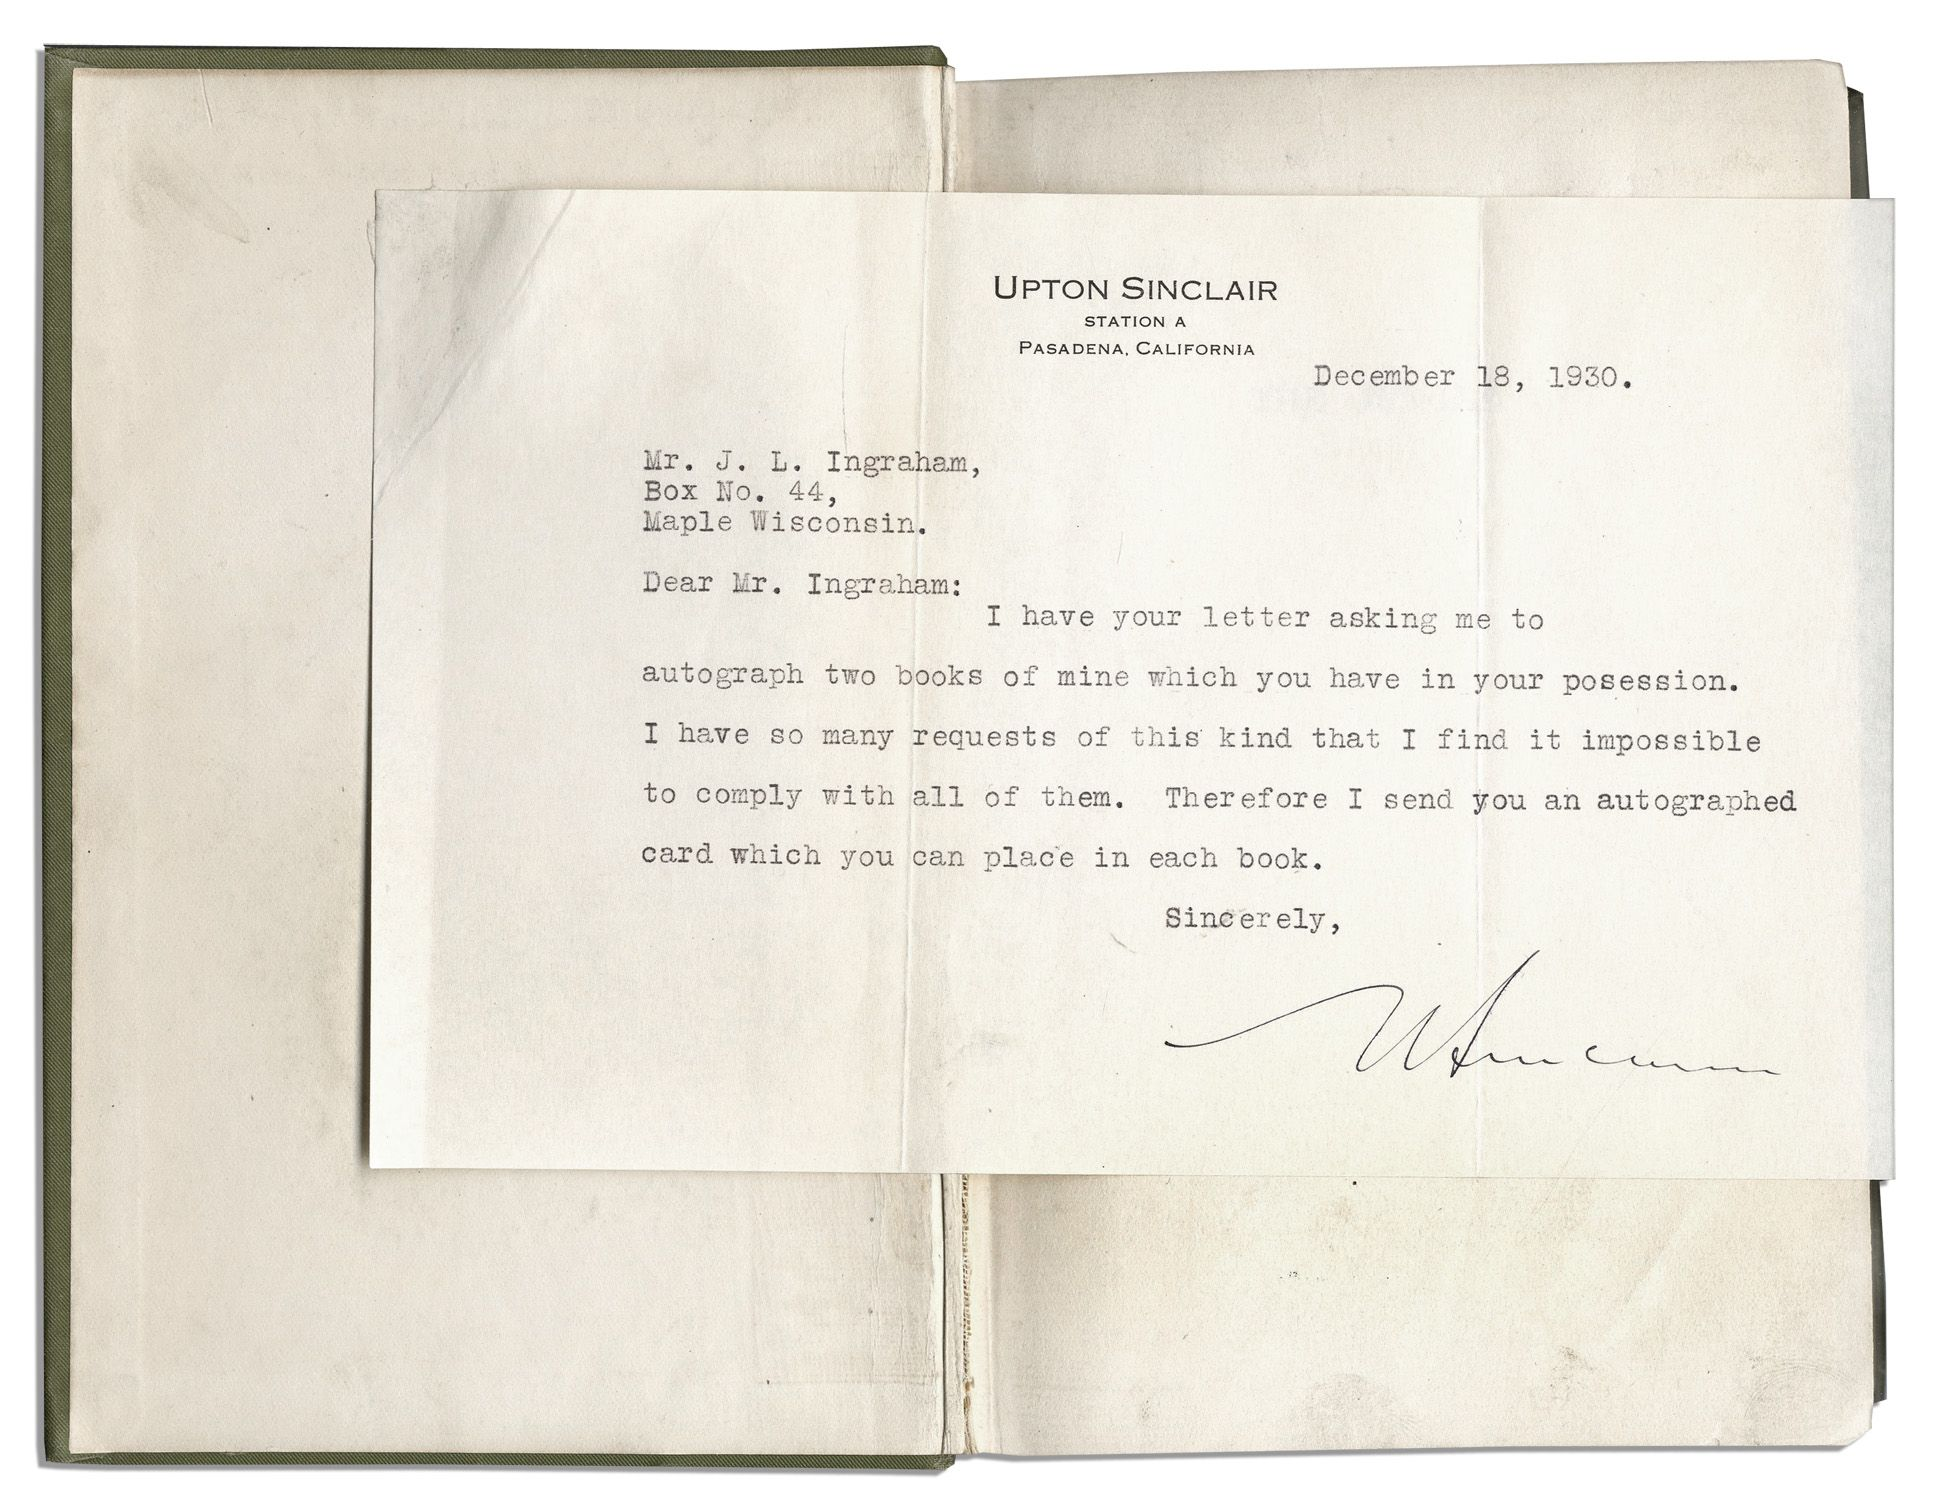 The jungle by upton sinclair letter